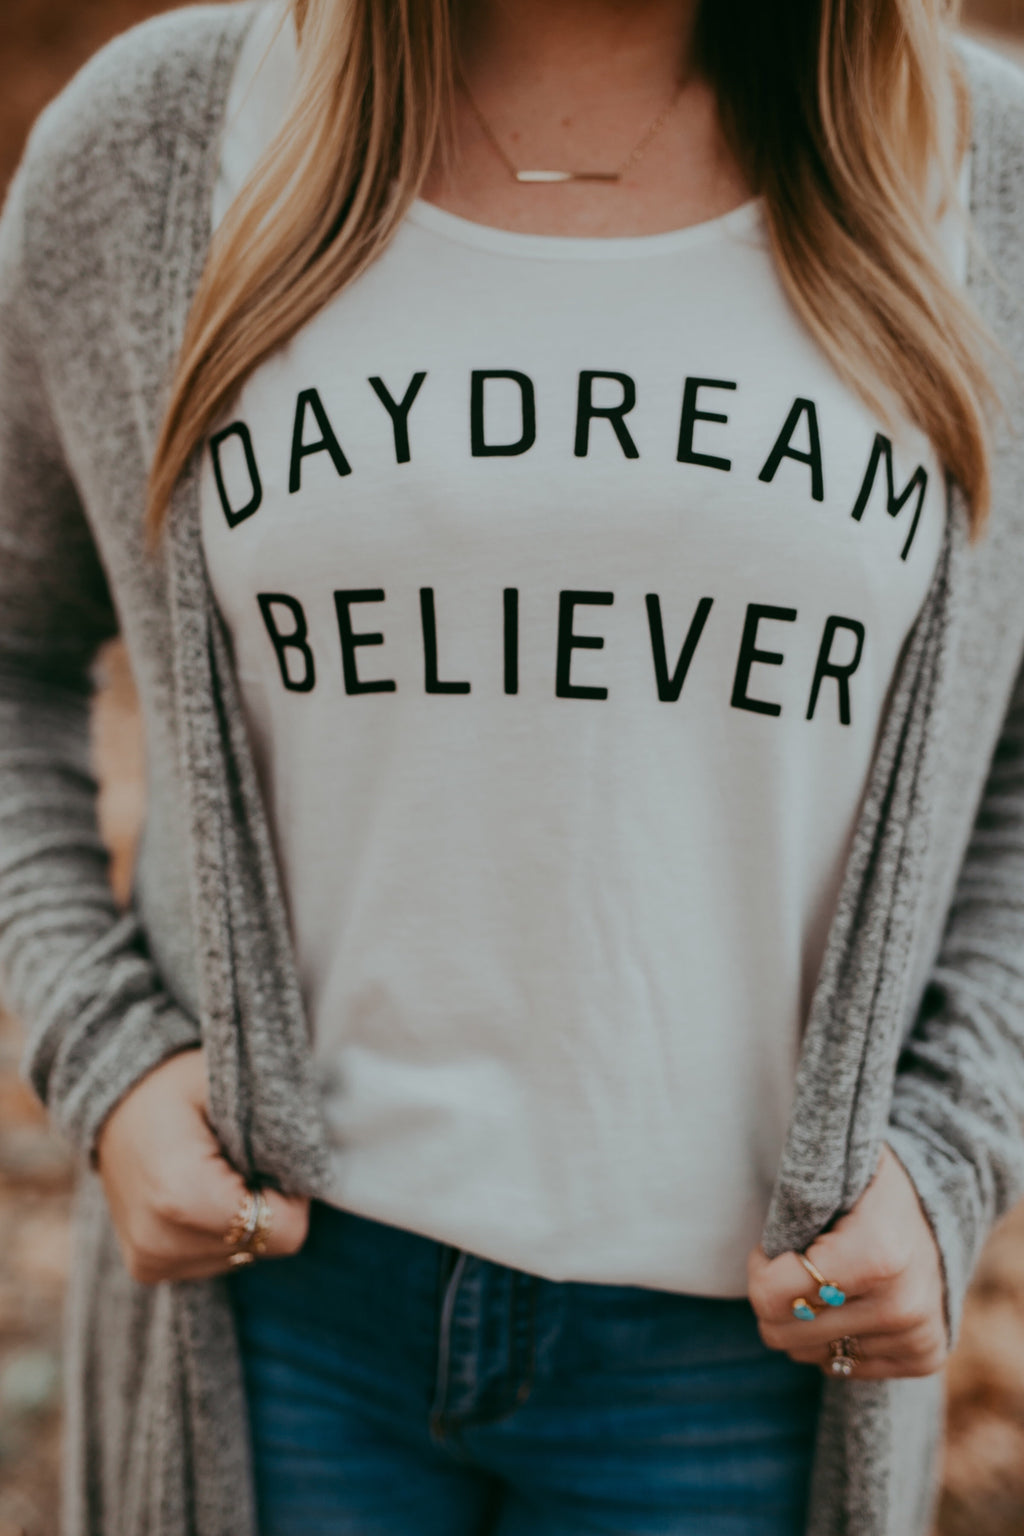 The Daydream Believer Tee